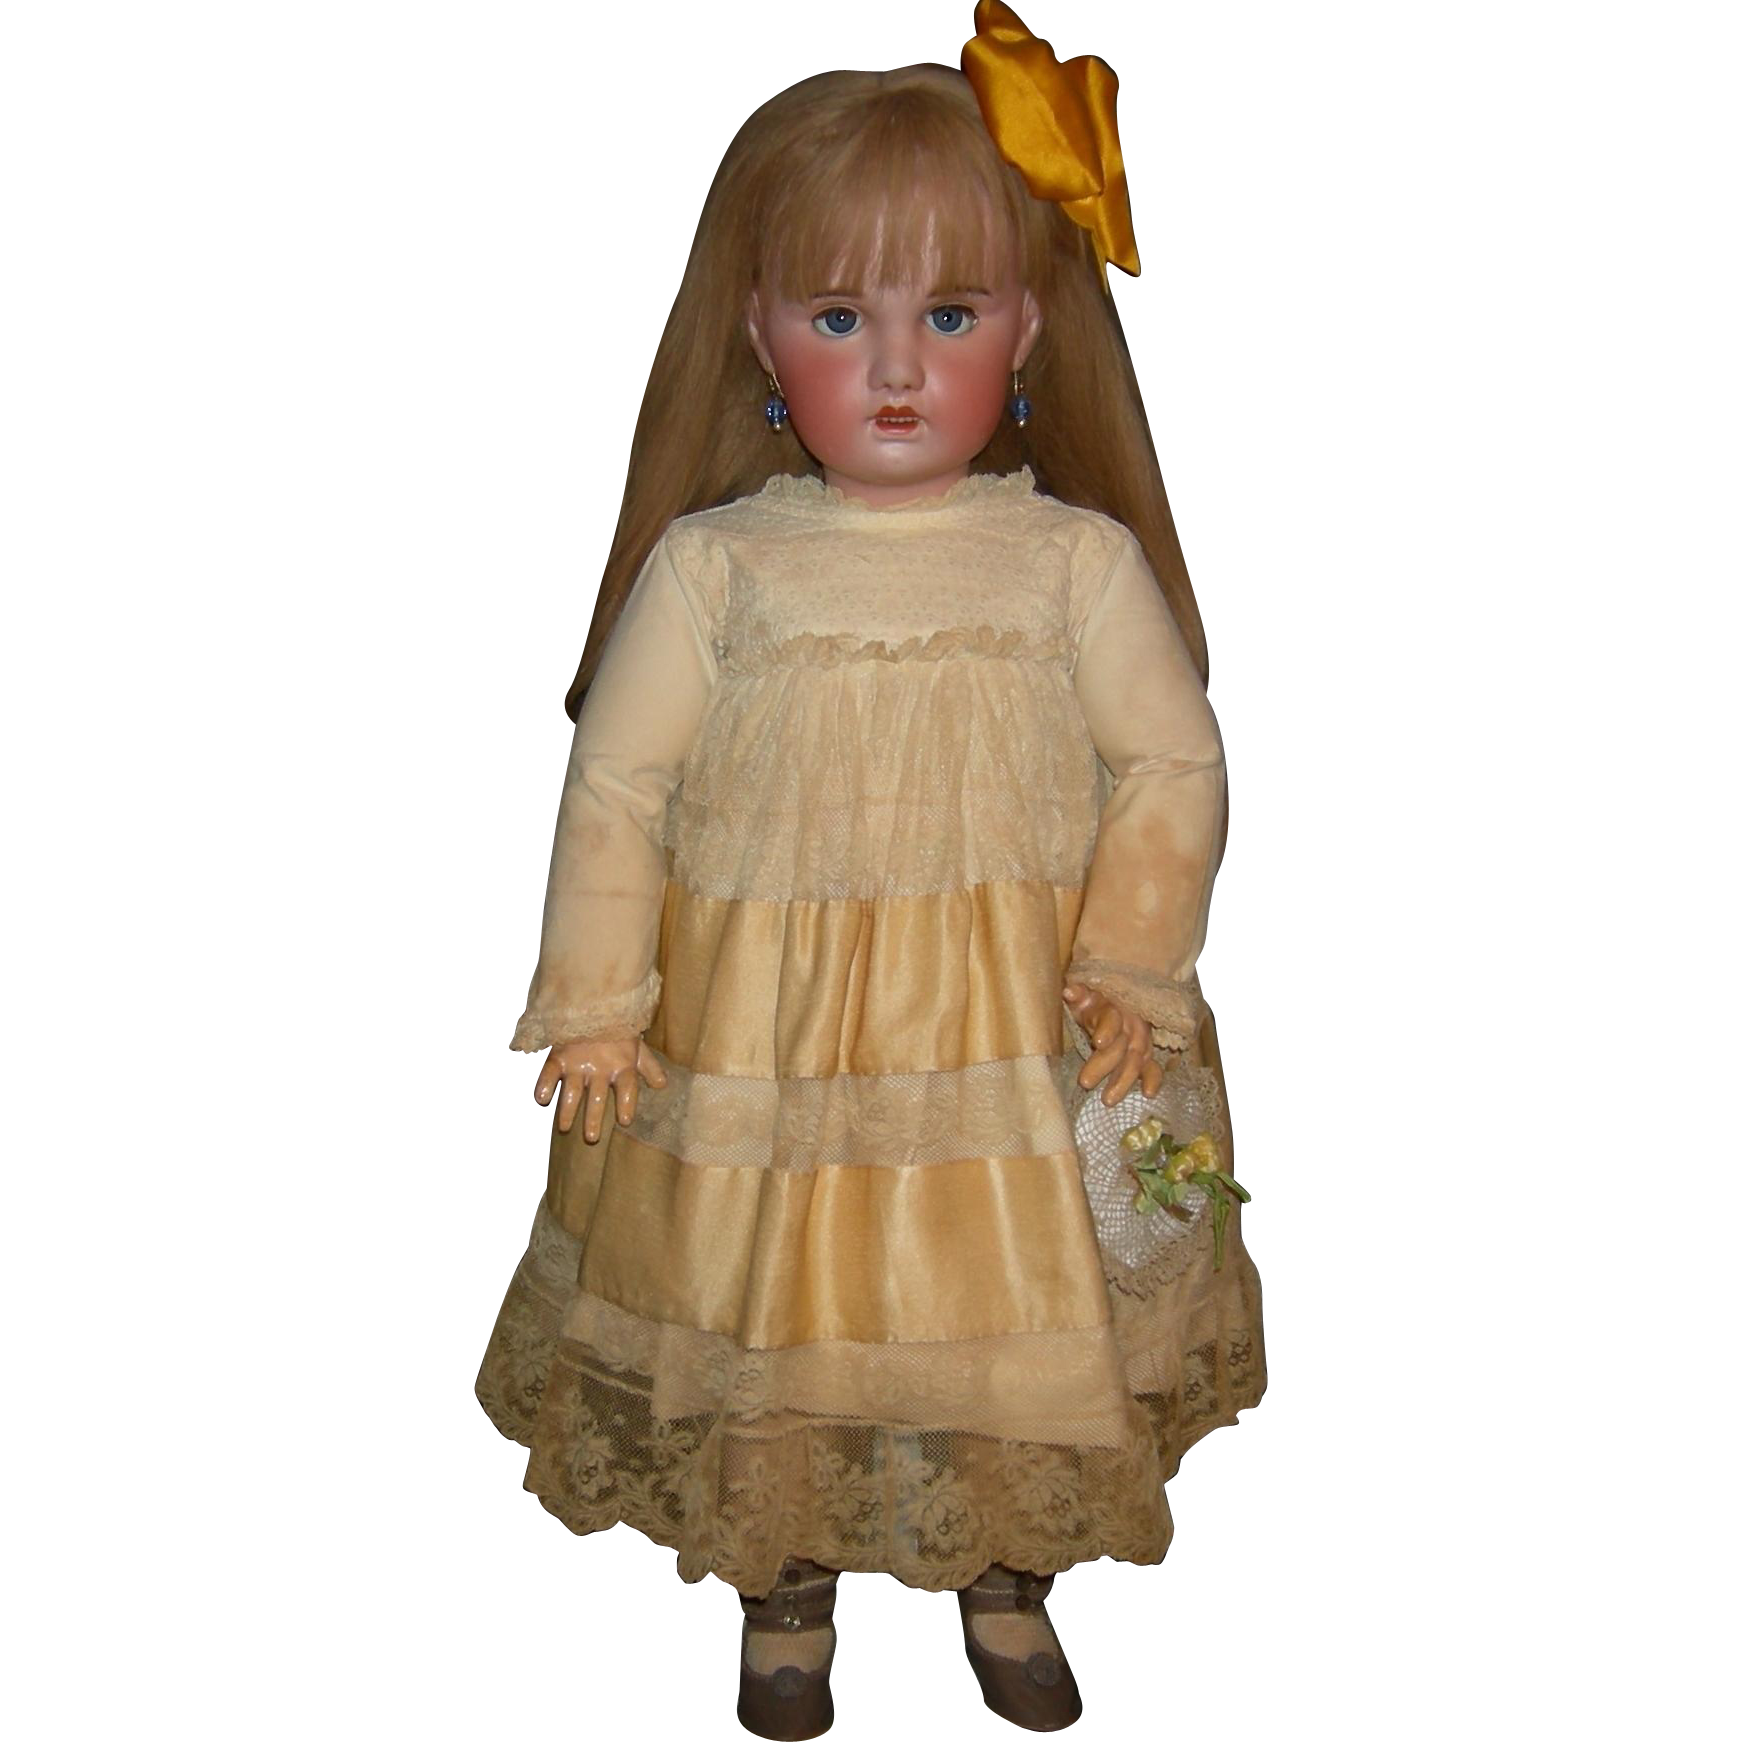 "LARGE 31"" - JUMEAU SFBJ PARIS - Long Blonde Hair & Blue Eyes - Heavy, Chunky Body - Pretty Dress!!!"